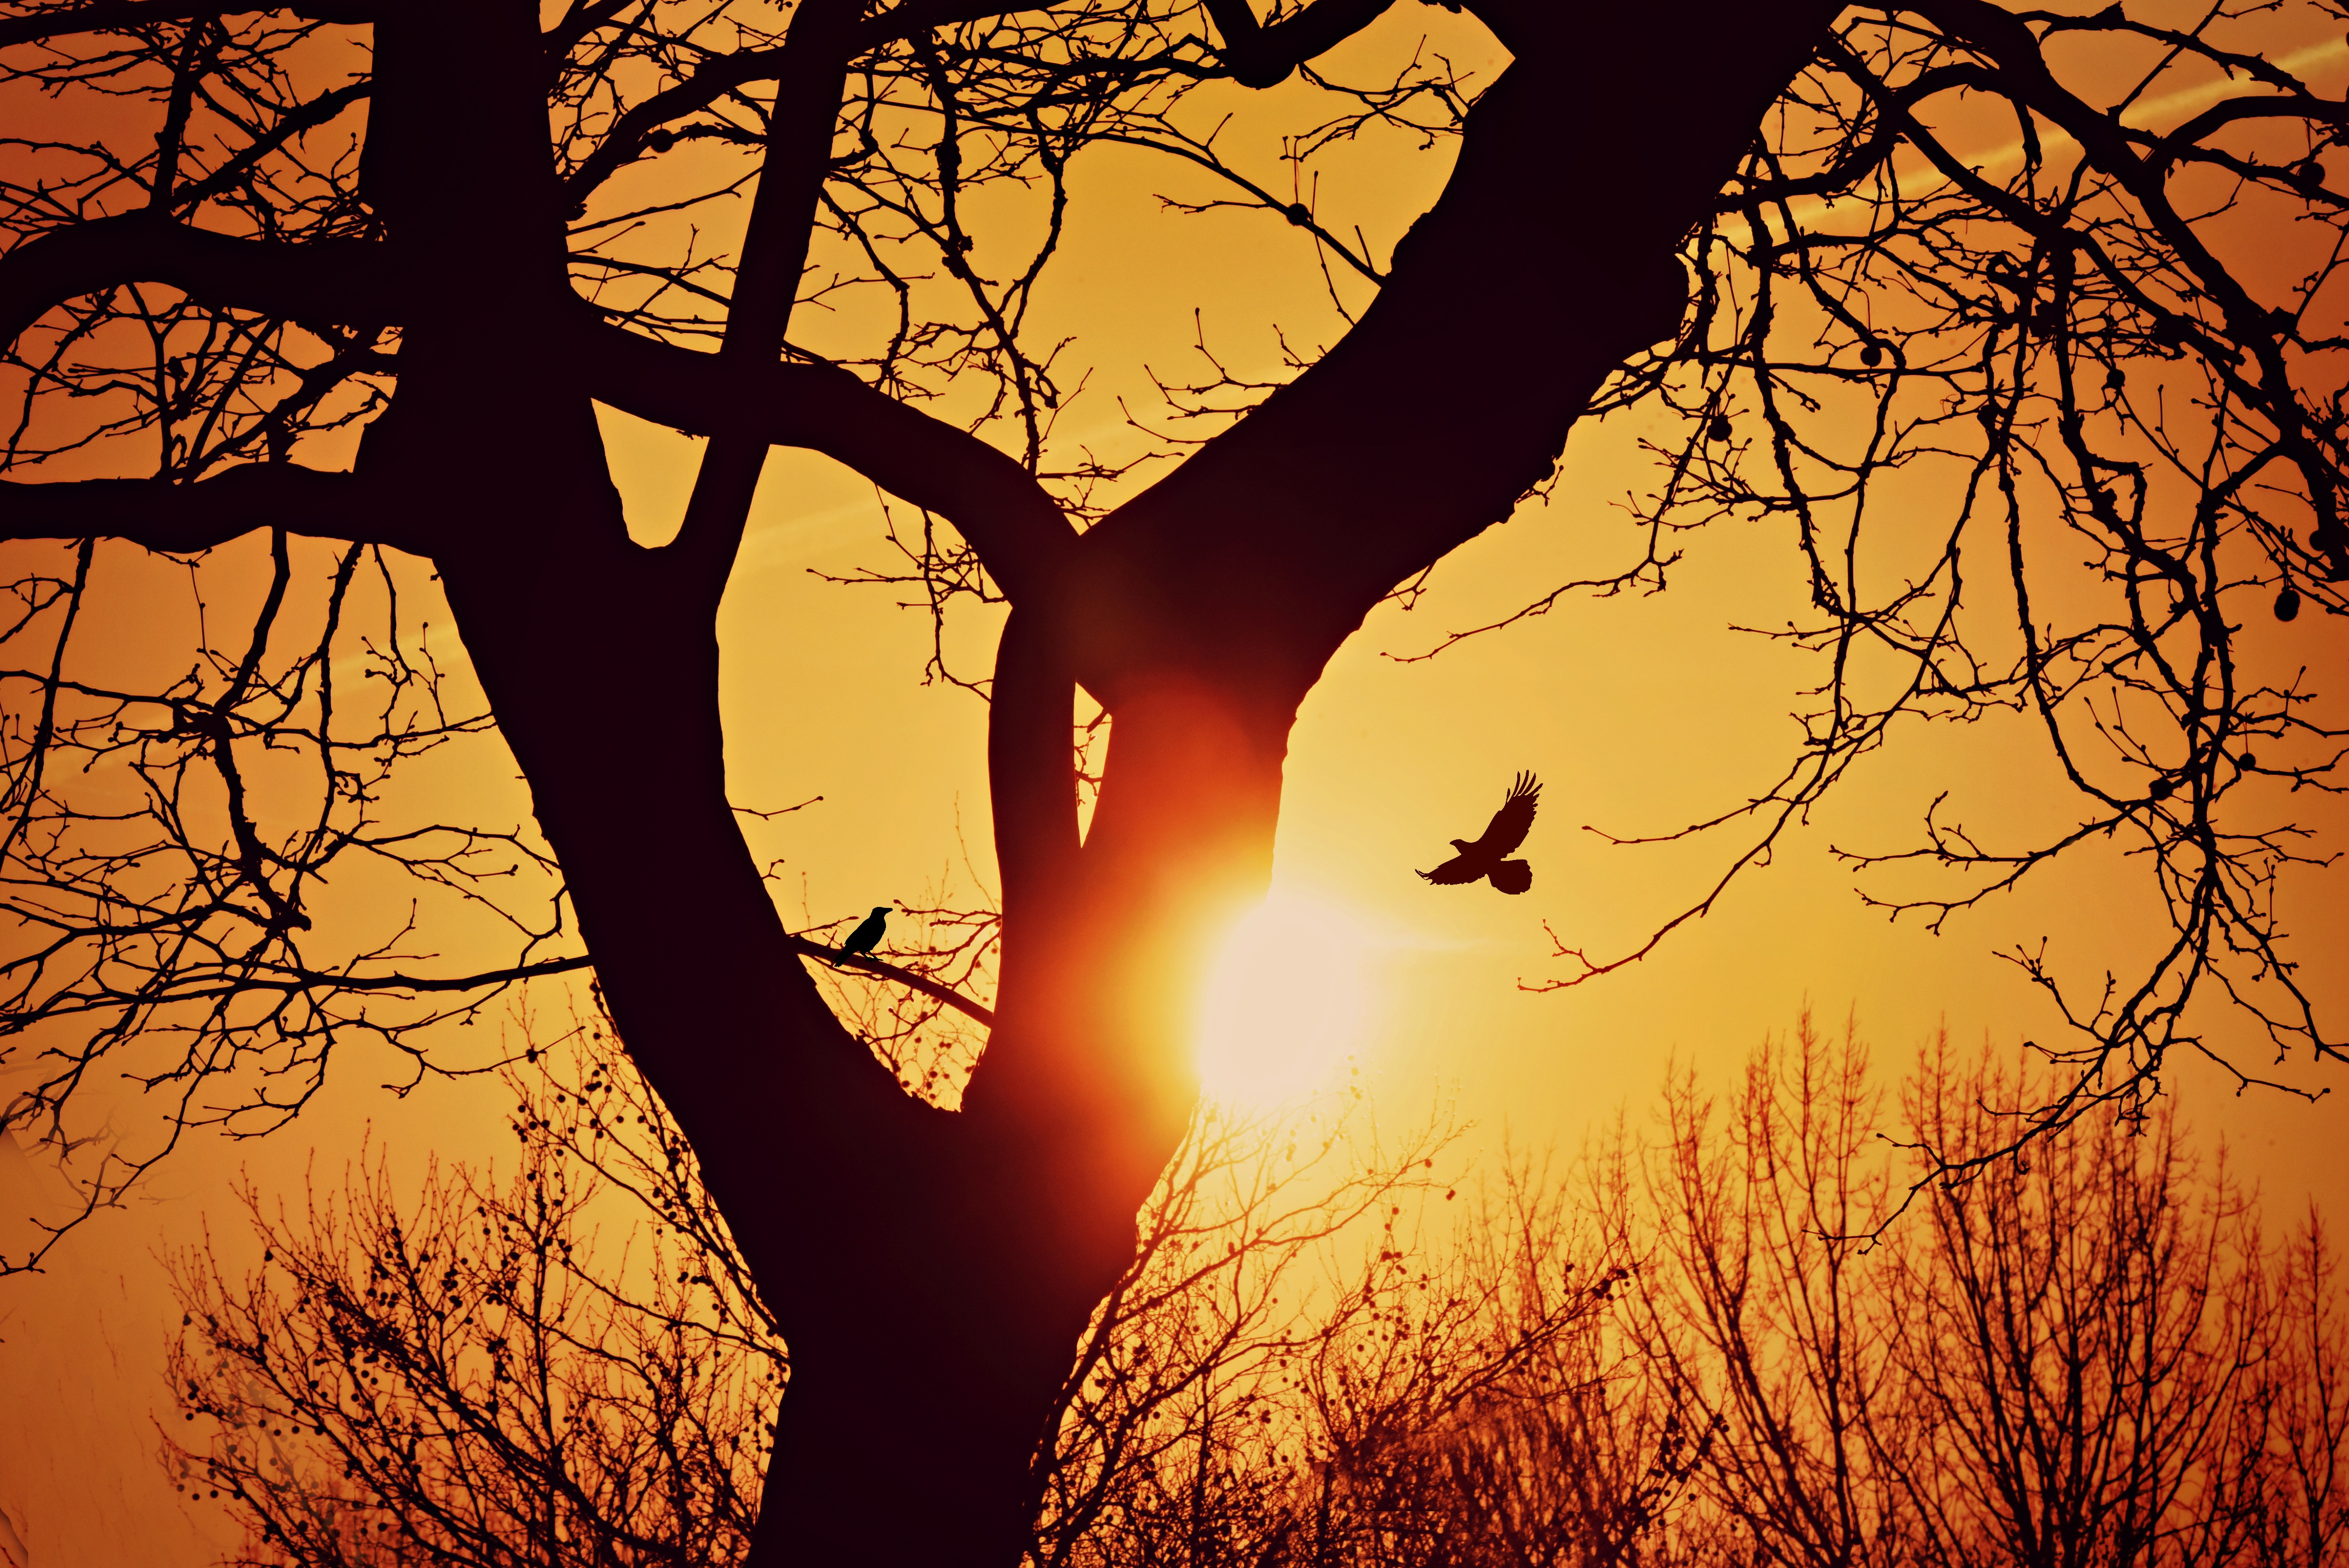 122075 download wallpaper Nature, Bird, Silhouette, Sunset, Flight, Branches, Wood, Tree screensavers and pictures for free